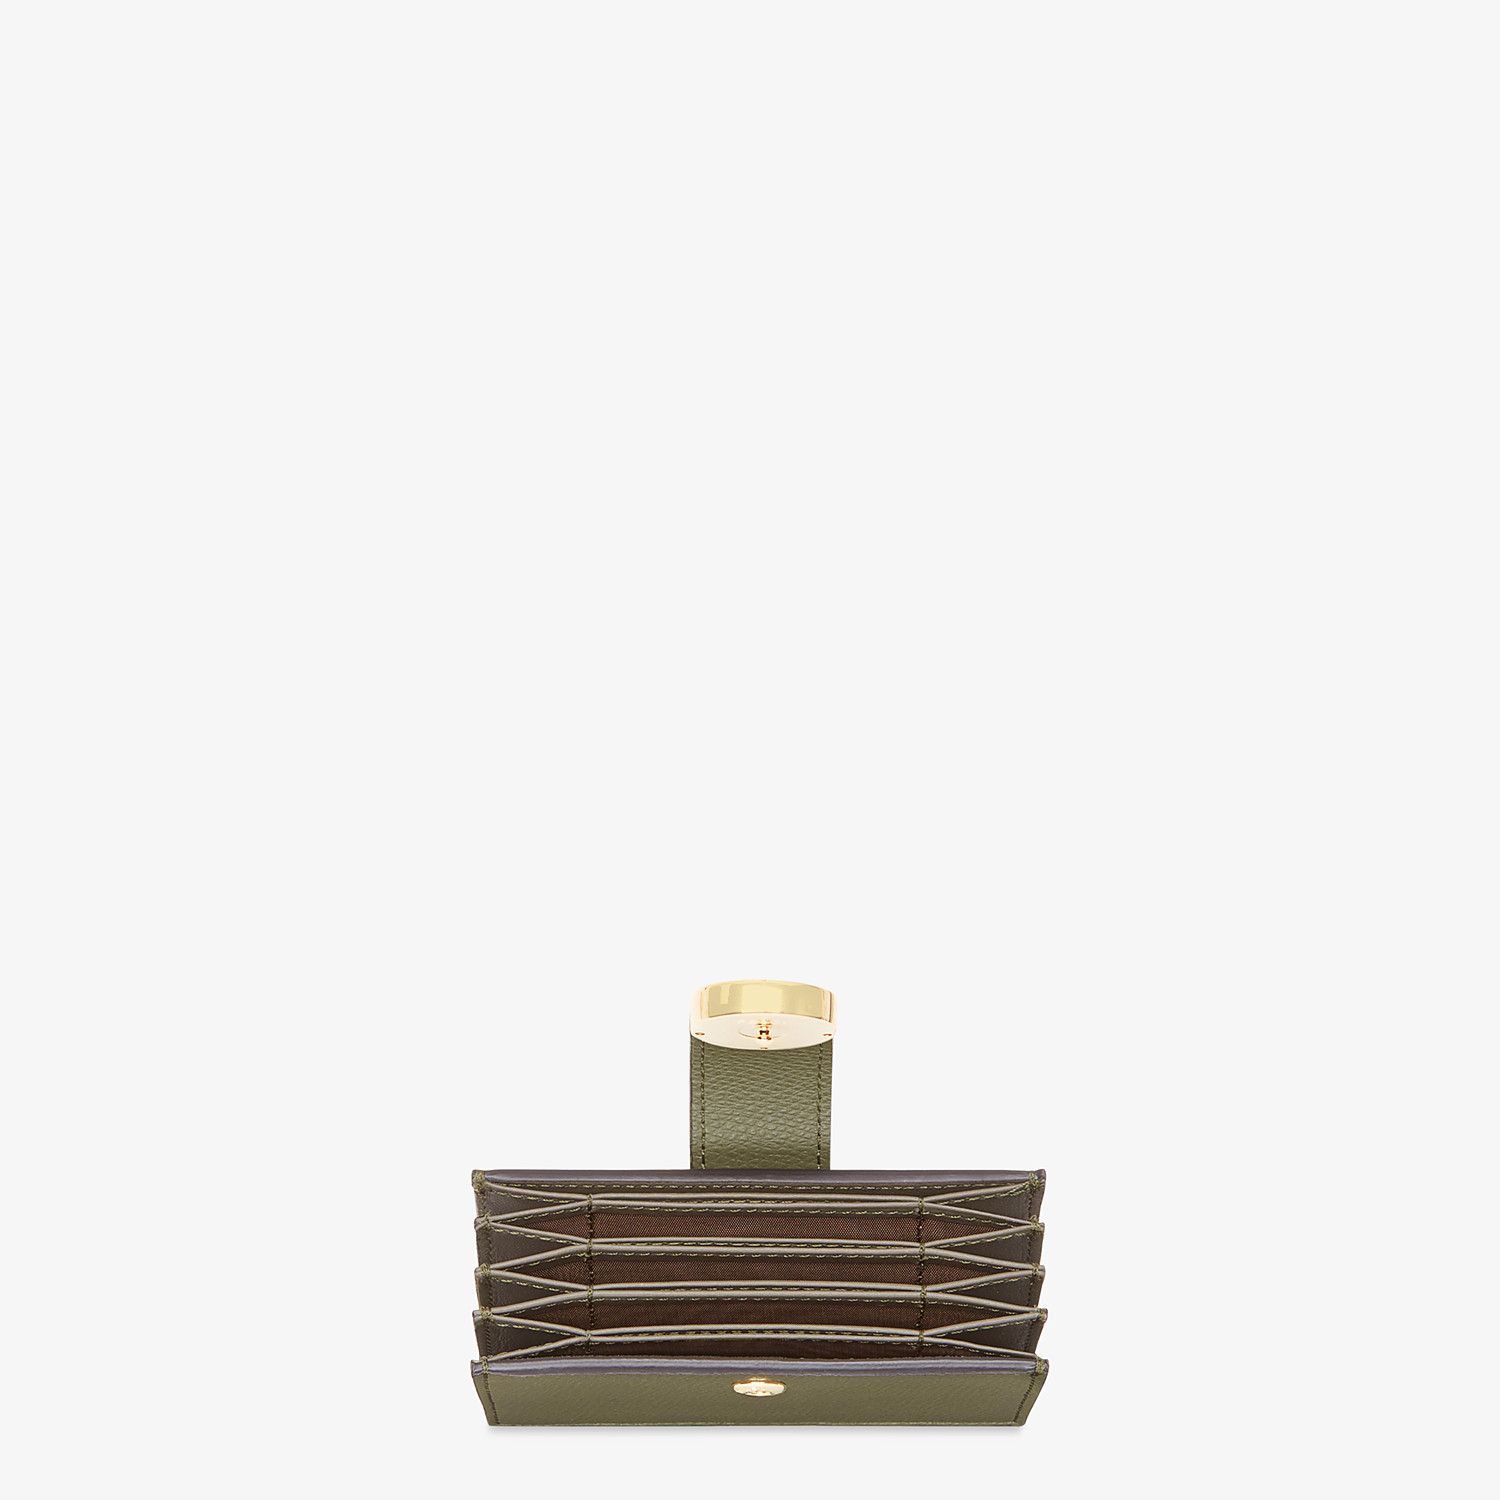 FENDI CARD HOLDER - Green leather gusseted card holder - view 3 detail